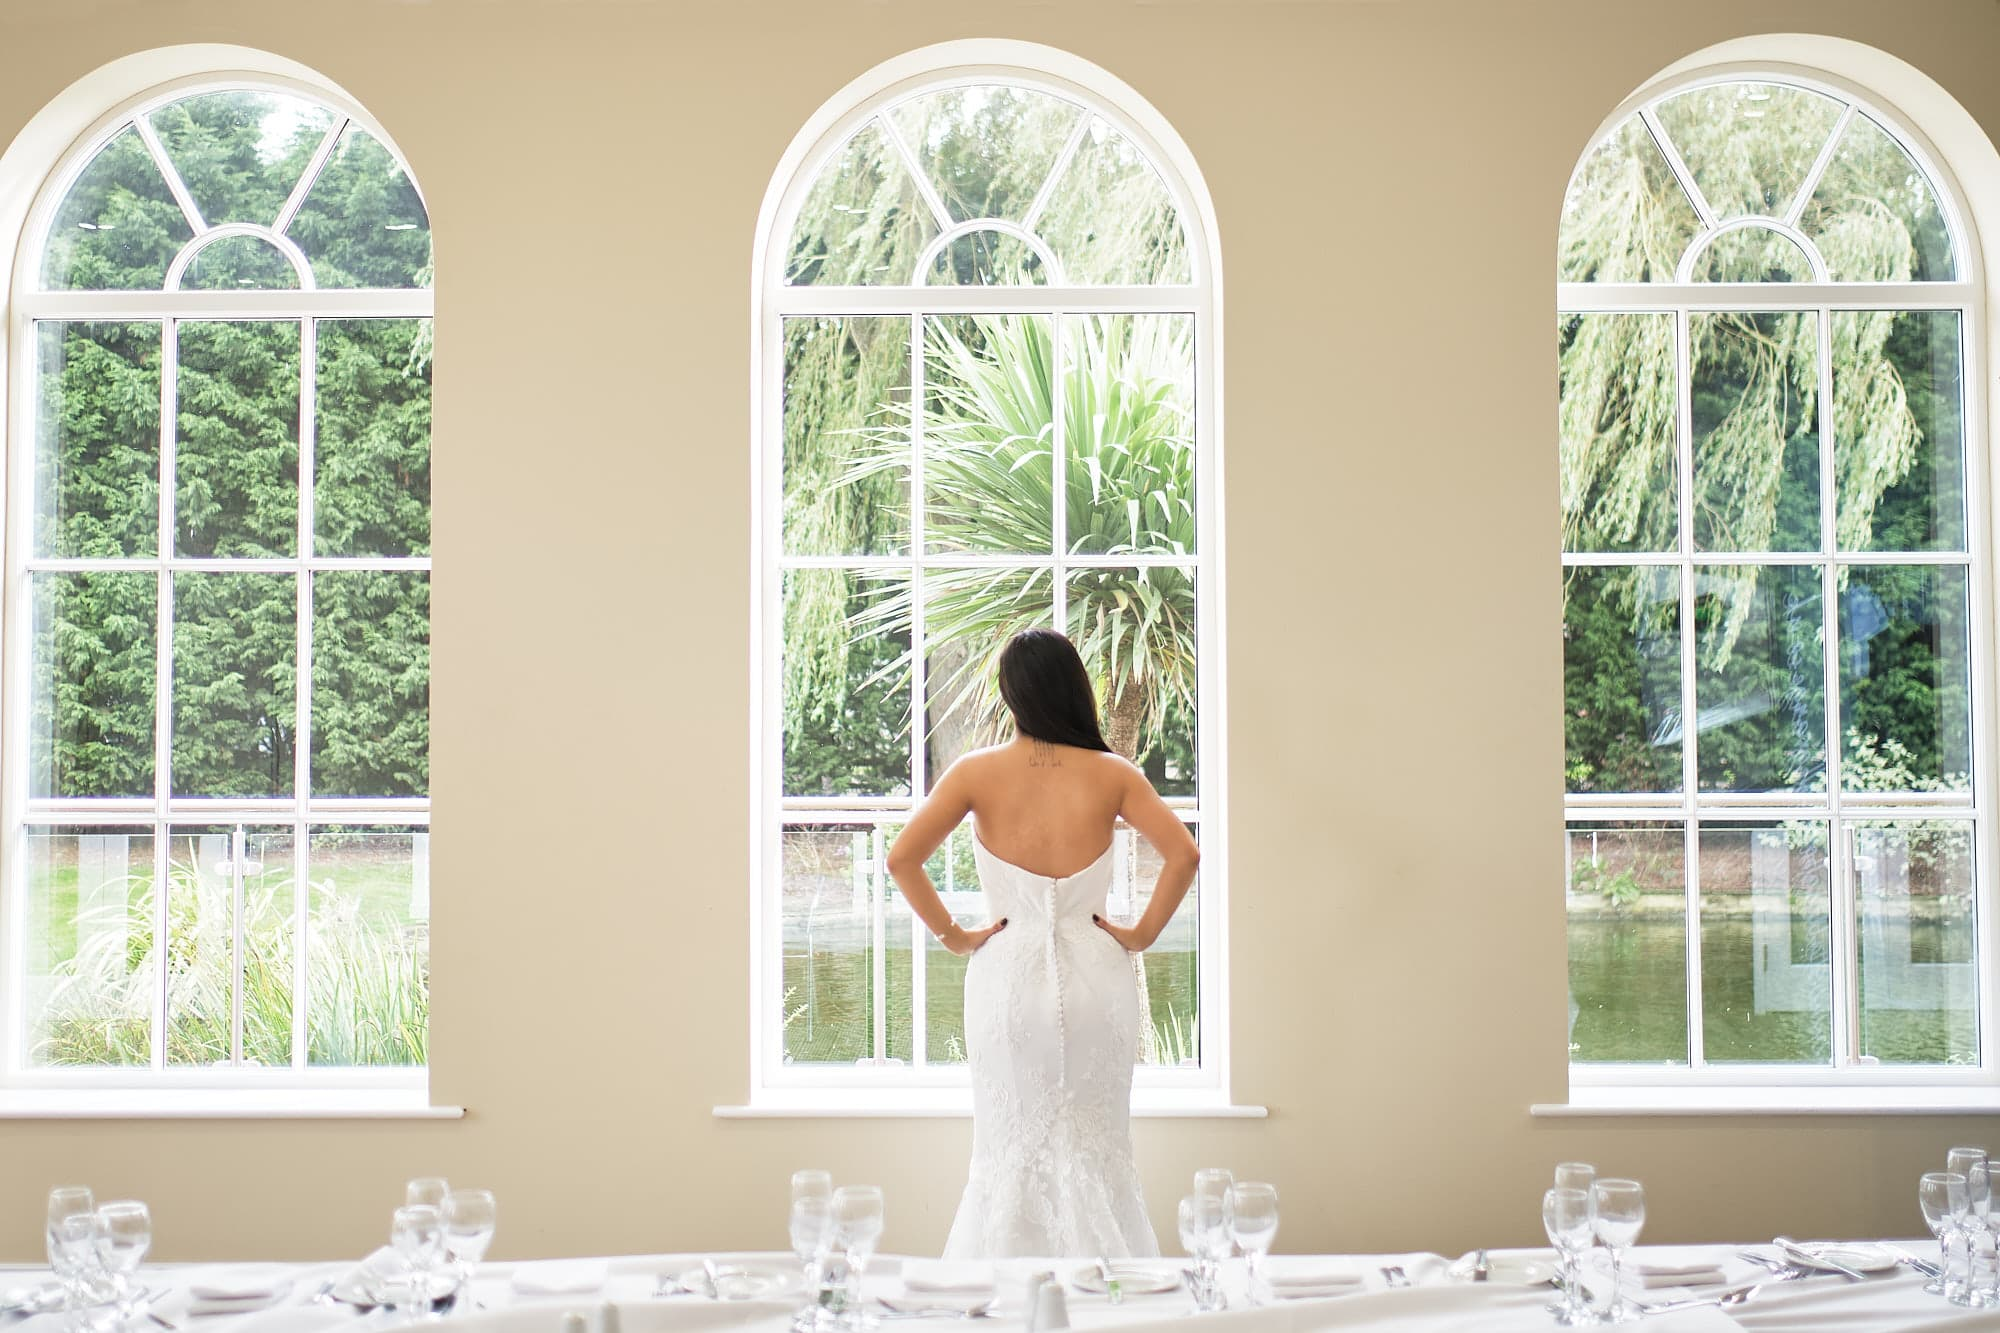 A bride looks out of the windows onto the gardens at Lincolnshire wedding venue Stallingborough Grange.